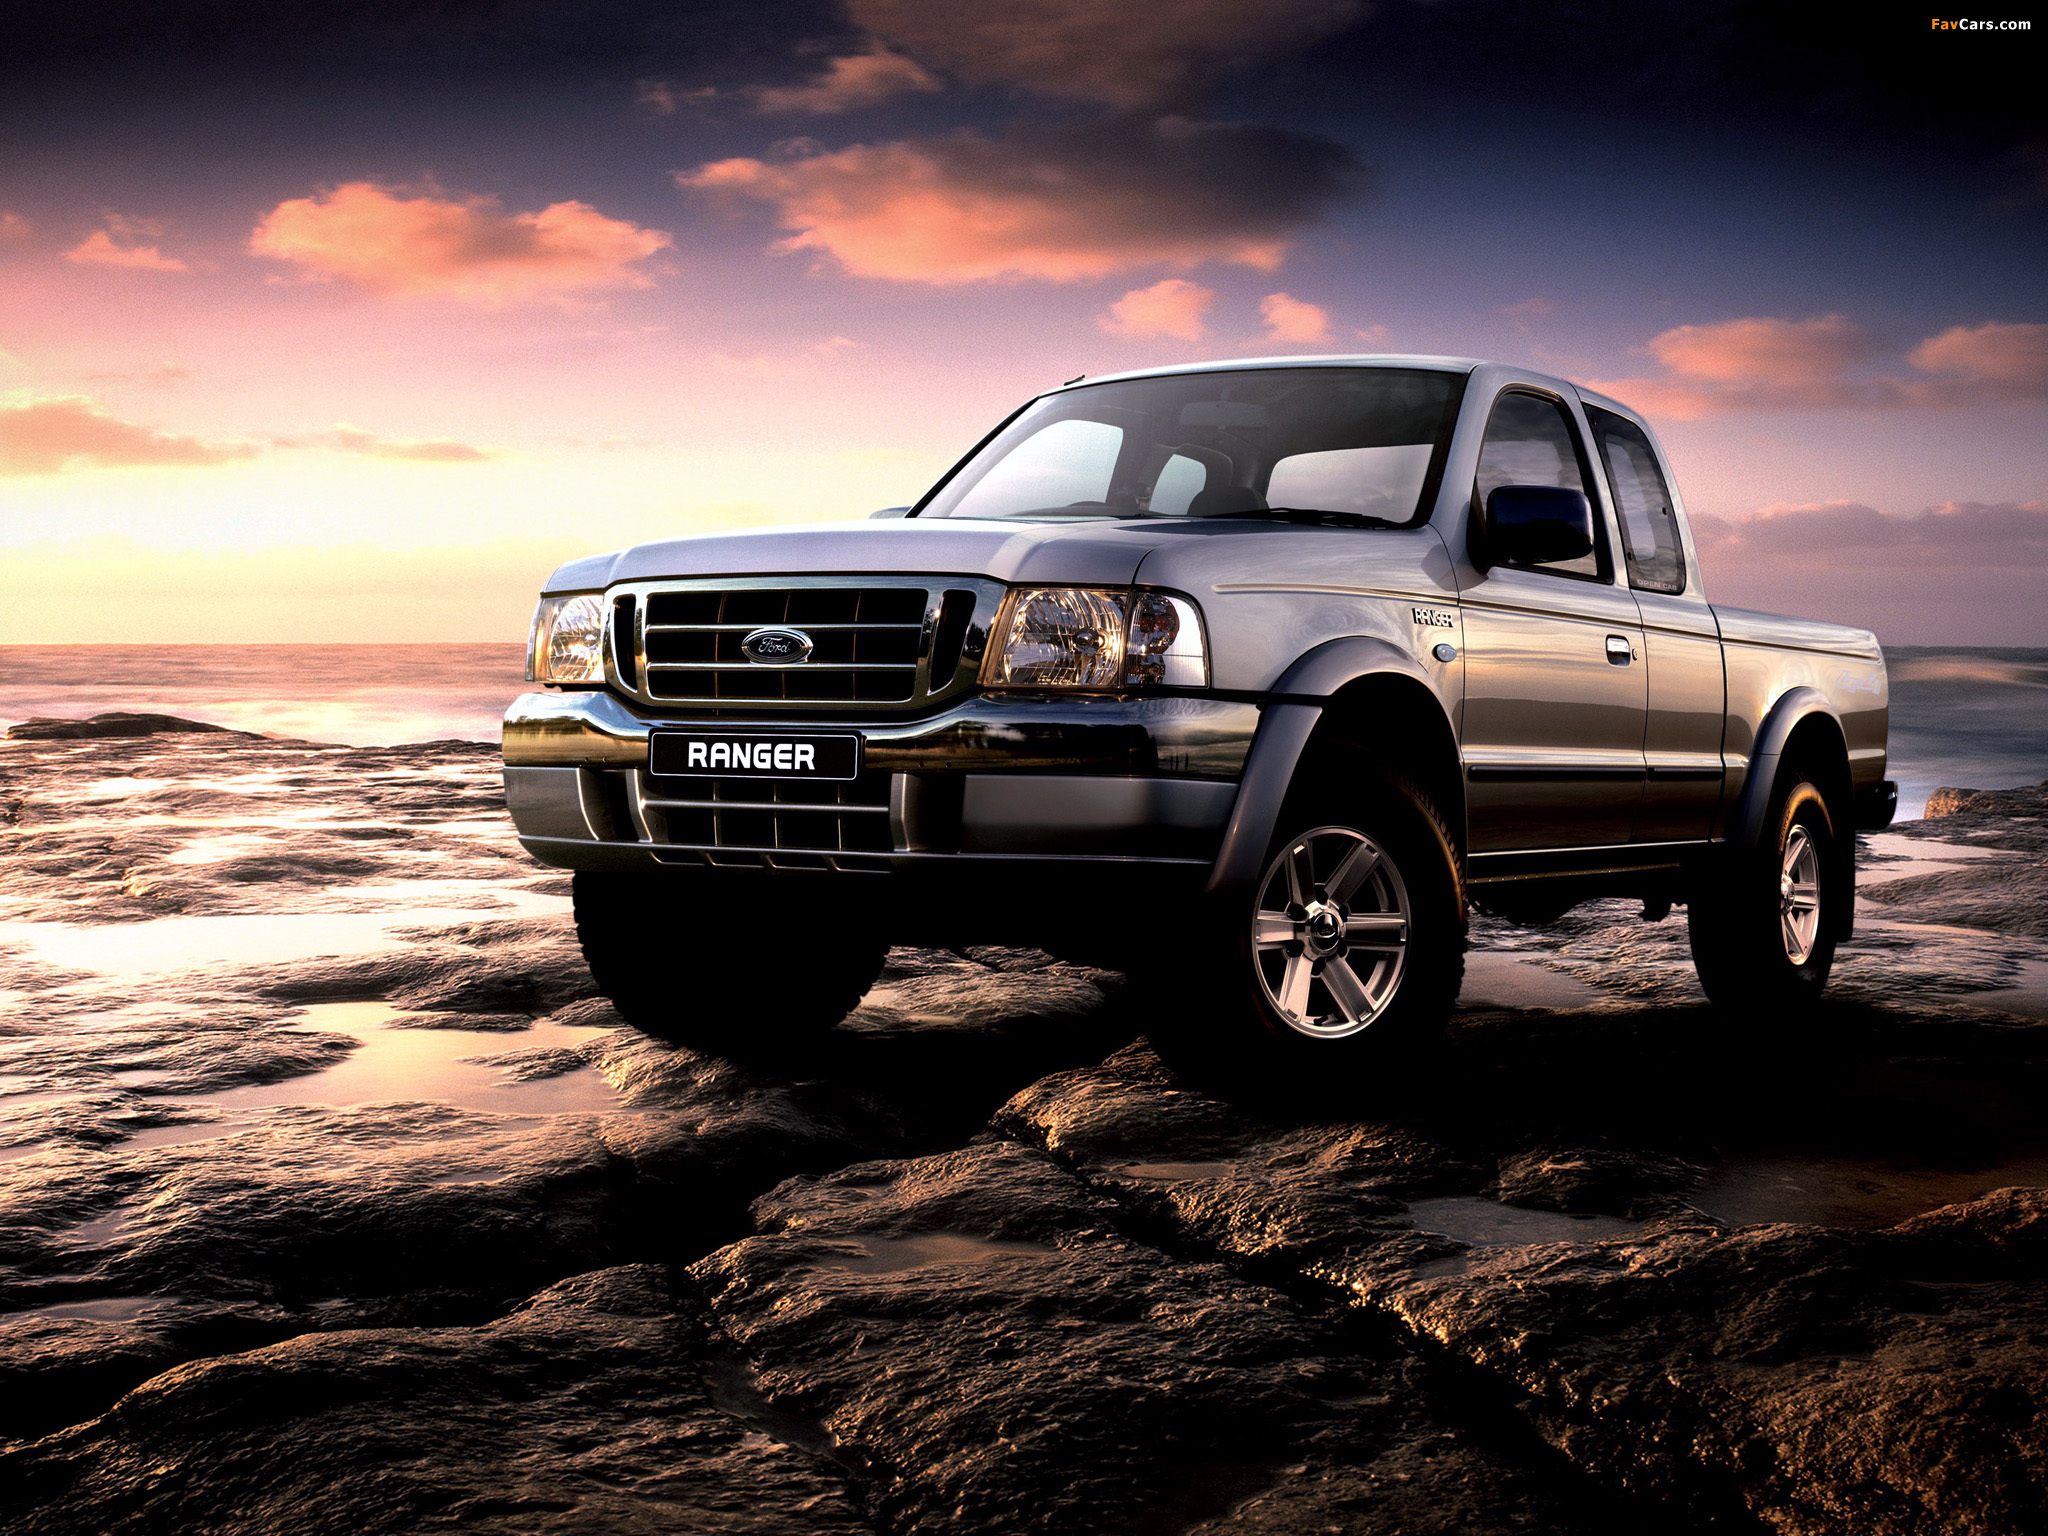 Ford Ranger Supercab 2003 06 Wallpapers 2048x1536